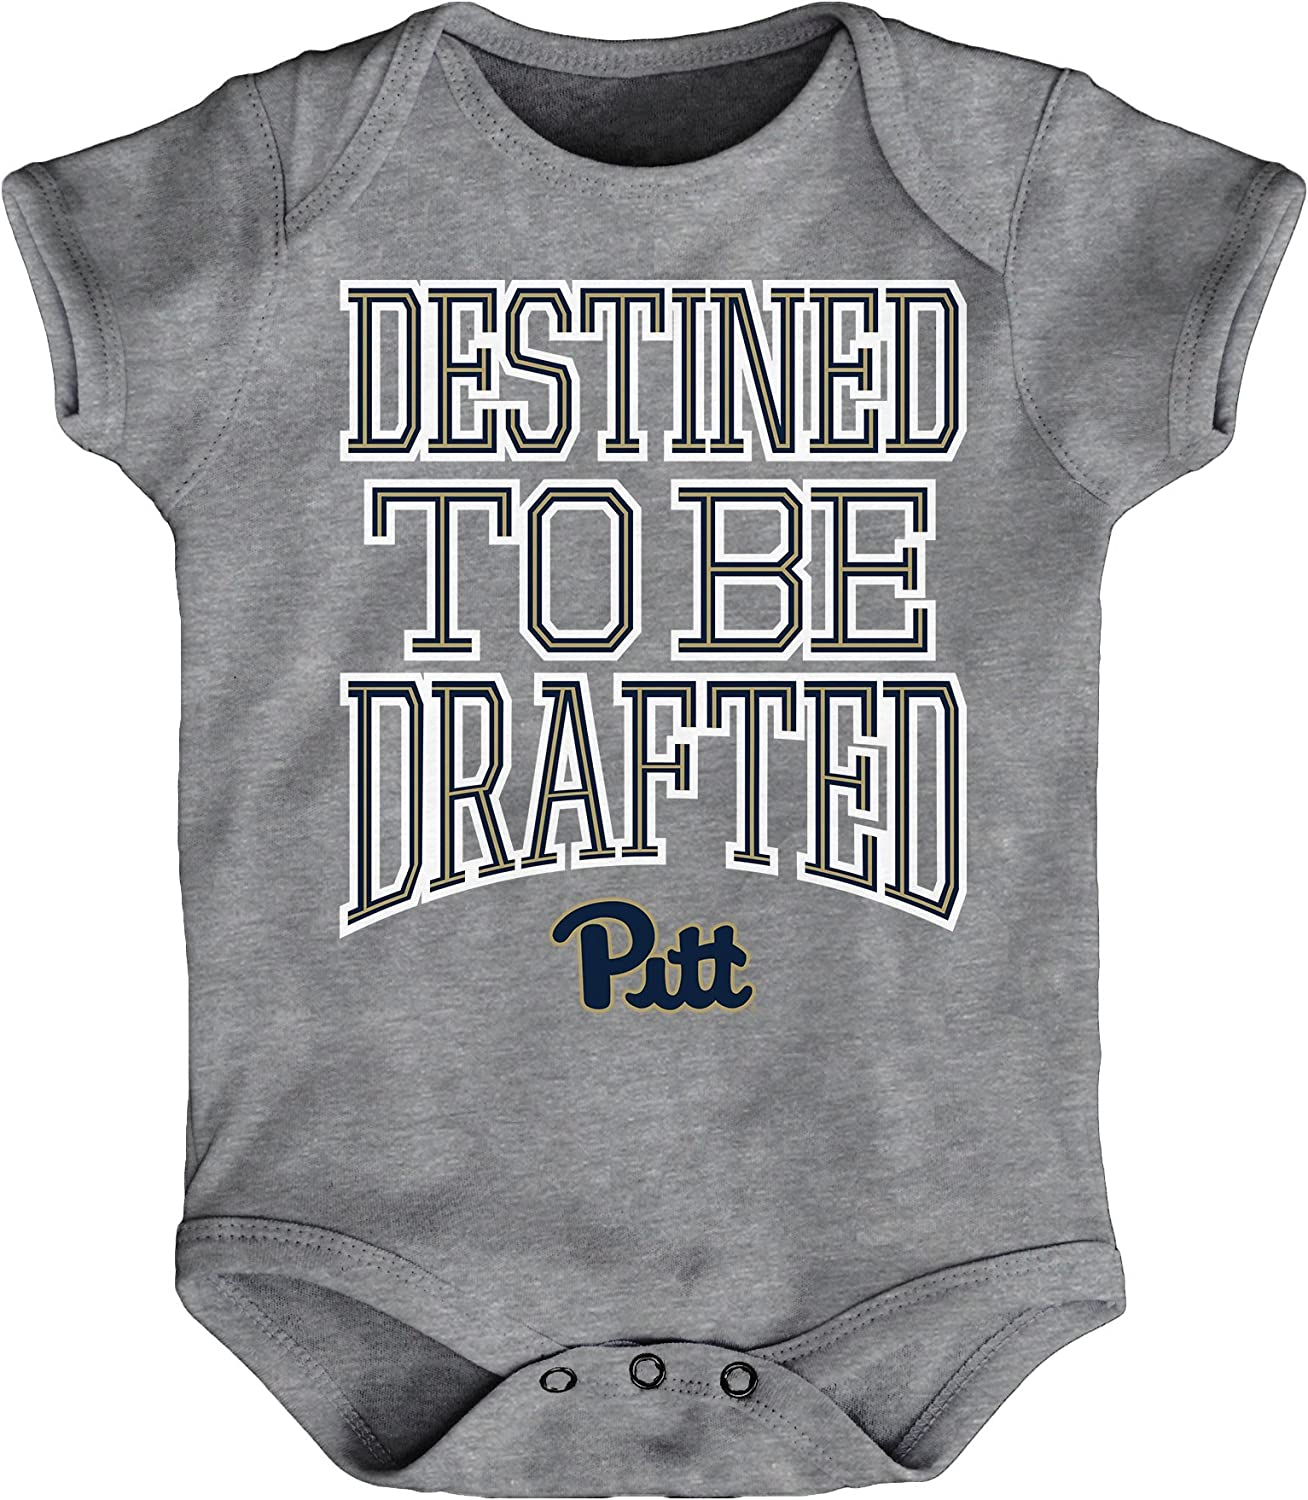 NCAA by Outerstuff NCAA Newborn /& Infant Destined Bodysuit